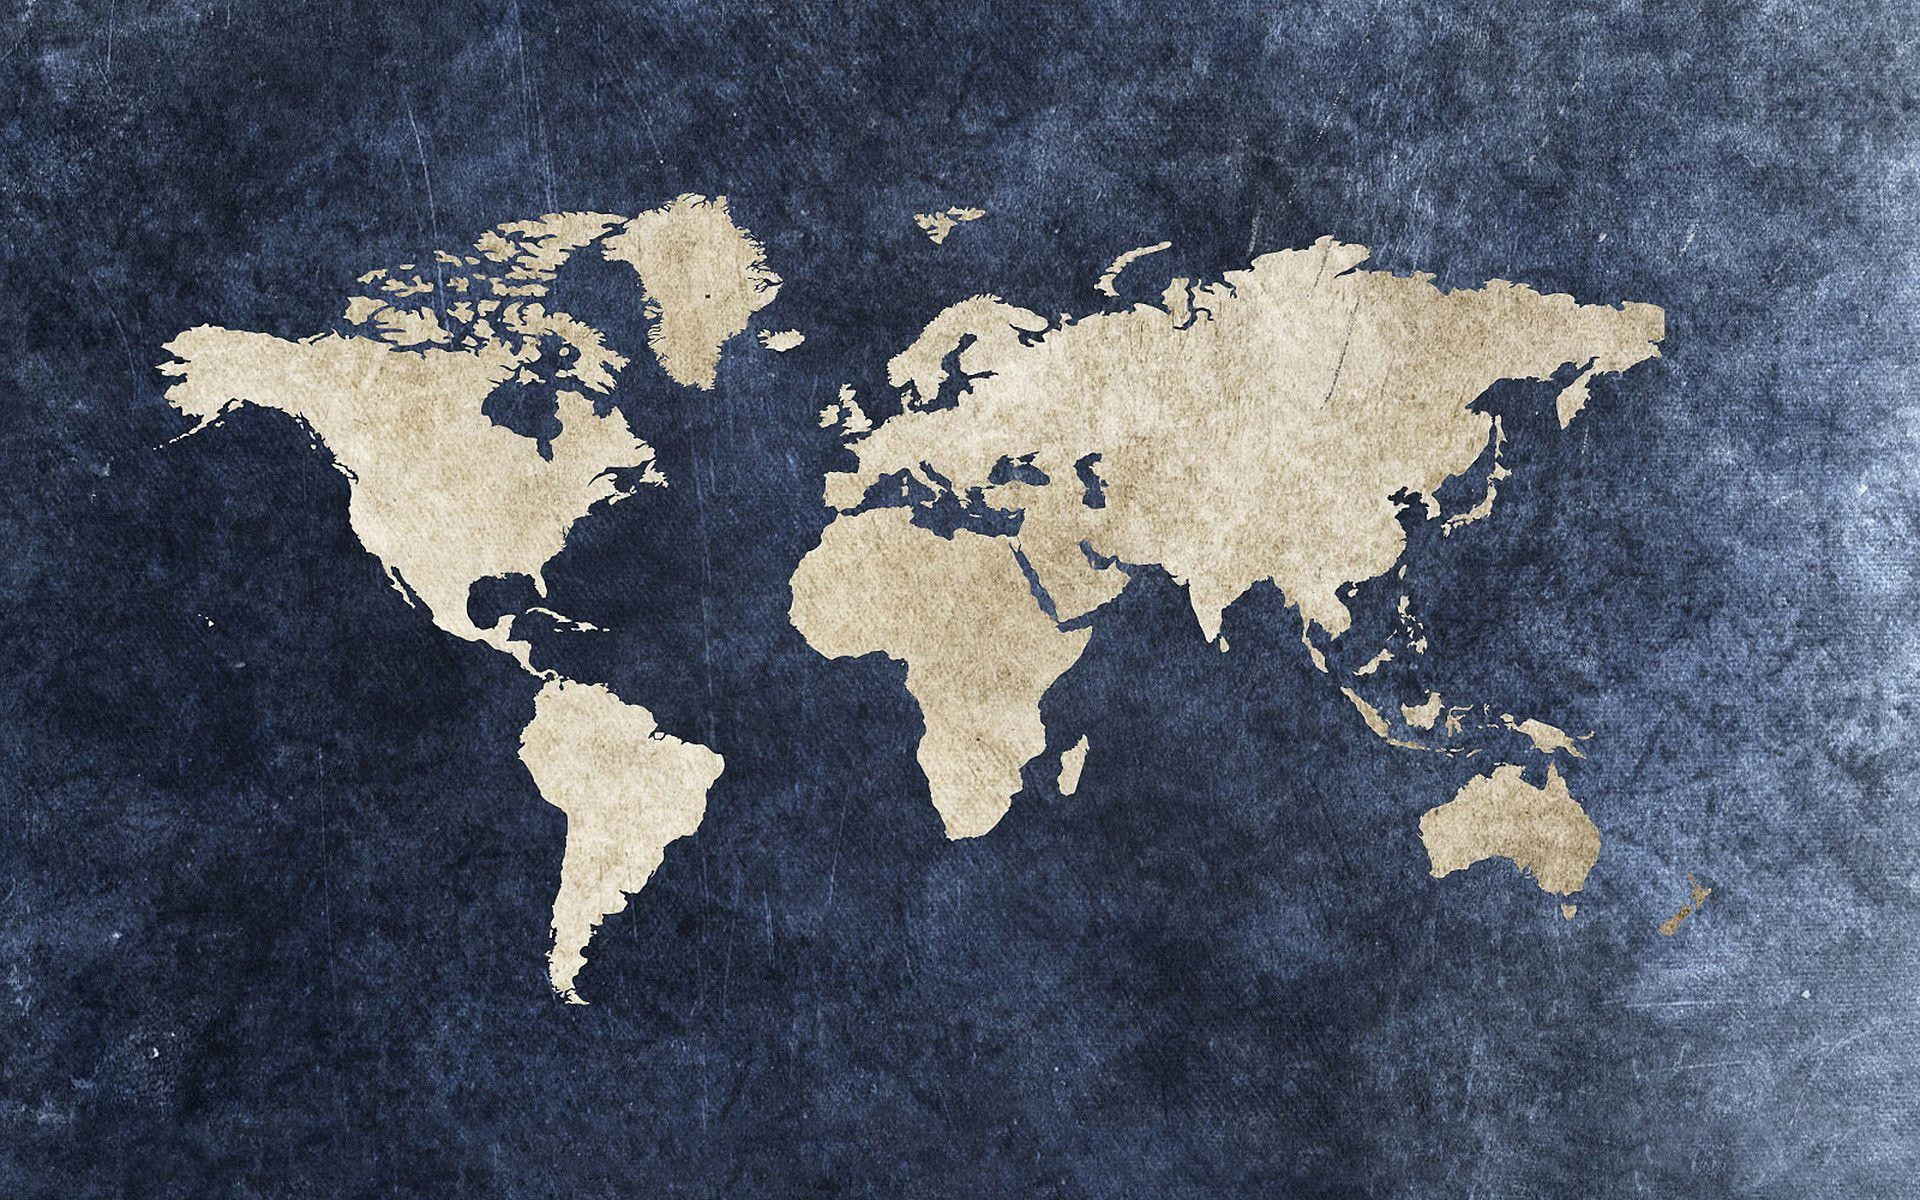 antique map background with World Map Desktop Wallpaper on Stock Images Gramophone Nostalgia Image23054924 as well Royalty Free Stock Photography Protect Earth Icon Image9227377 likewise World Map Desktop Wallpaper as well Stock Photo Alarm Clock Ringing White Background Isolated Image60421211 furthermore Royalty Free Stock Images Vector Elements Image10965959.